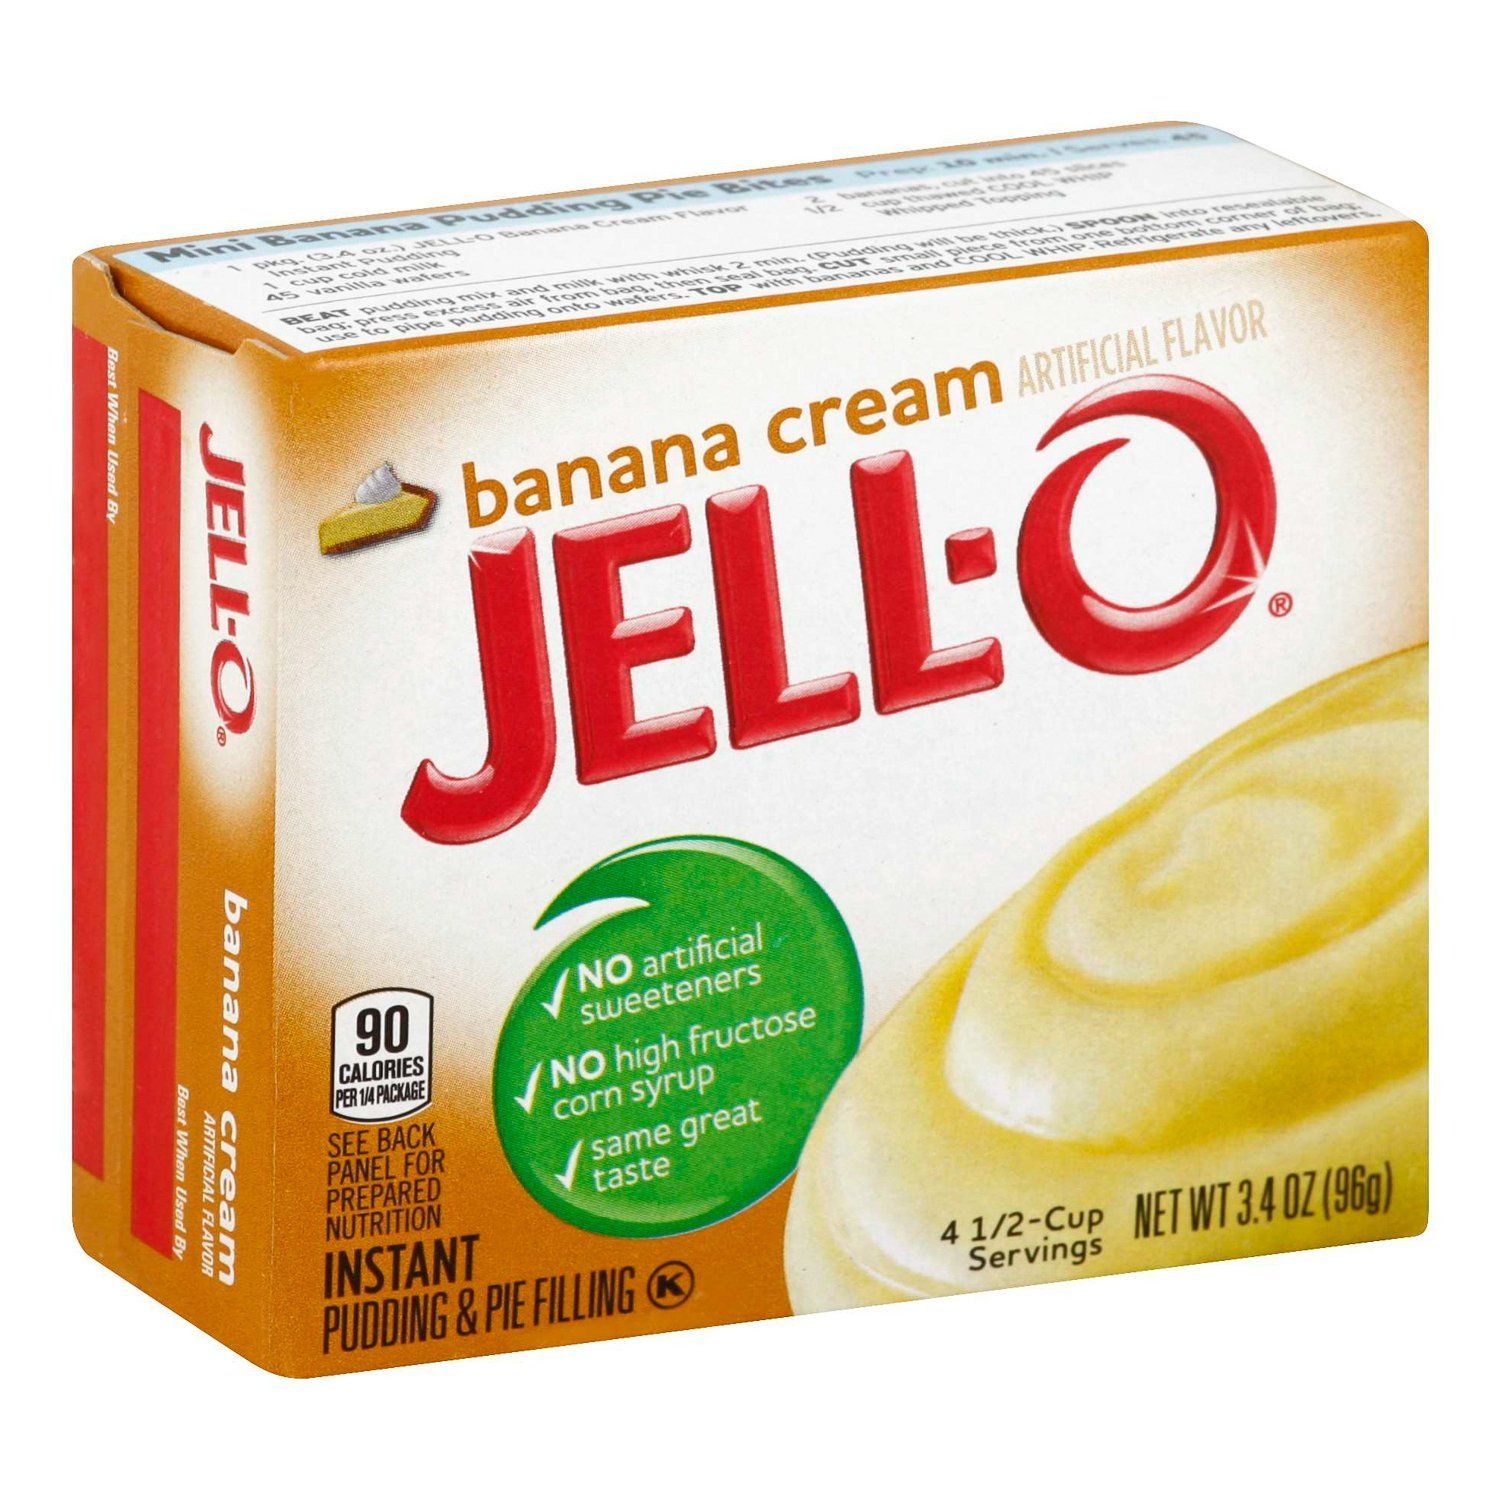 Jell-O Instant Pudding & Pie Filling Mixes Jell-O Banana Cream 3.4 Ounce